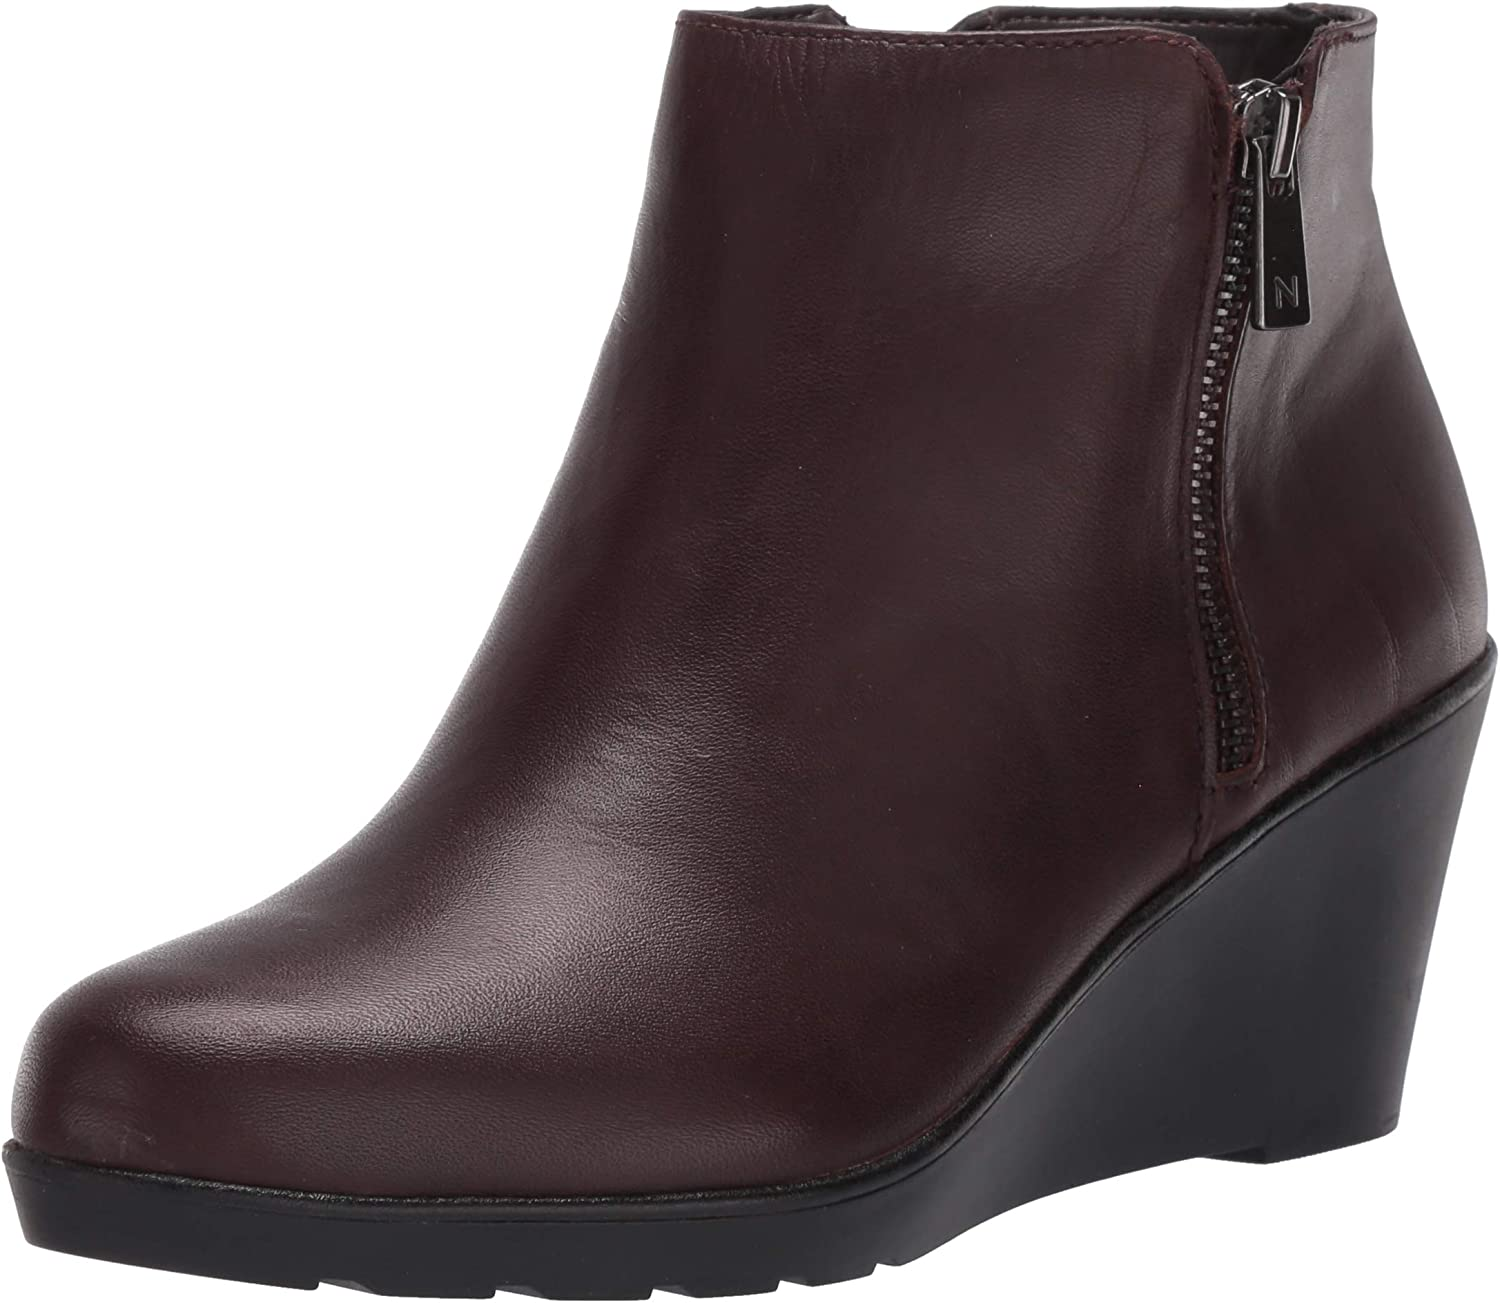 Naturalizer Women's Landry Booties Ankle Boot